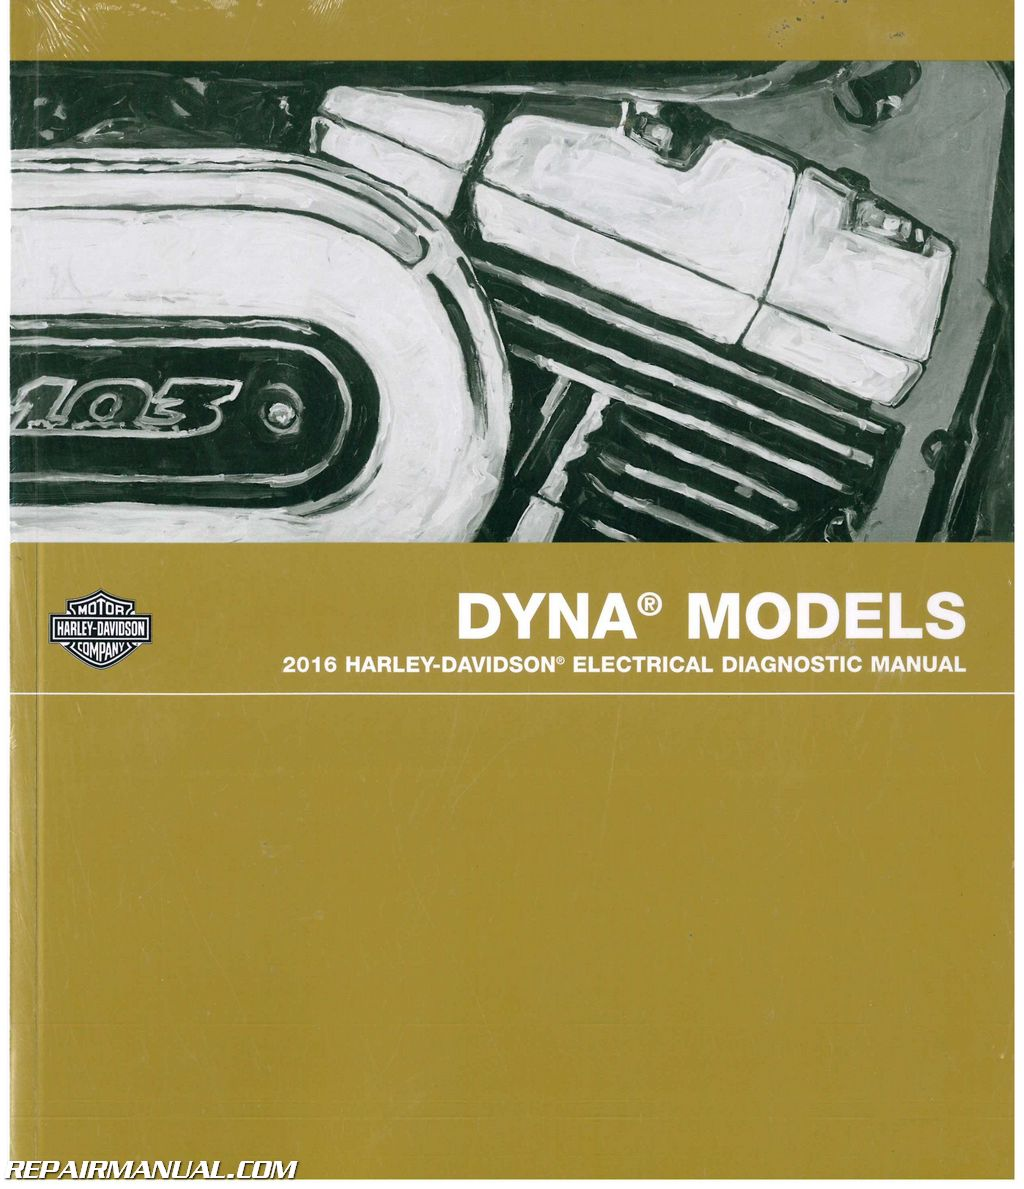 Wiring Diagram For Motorcyles Harley Flt Touring Models 2004 Epc